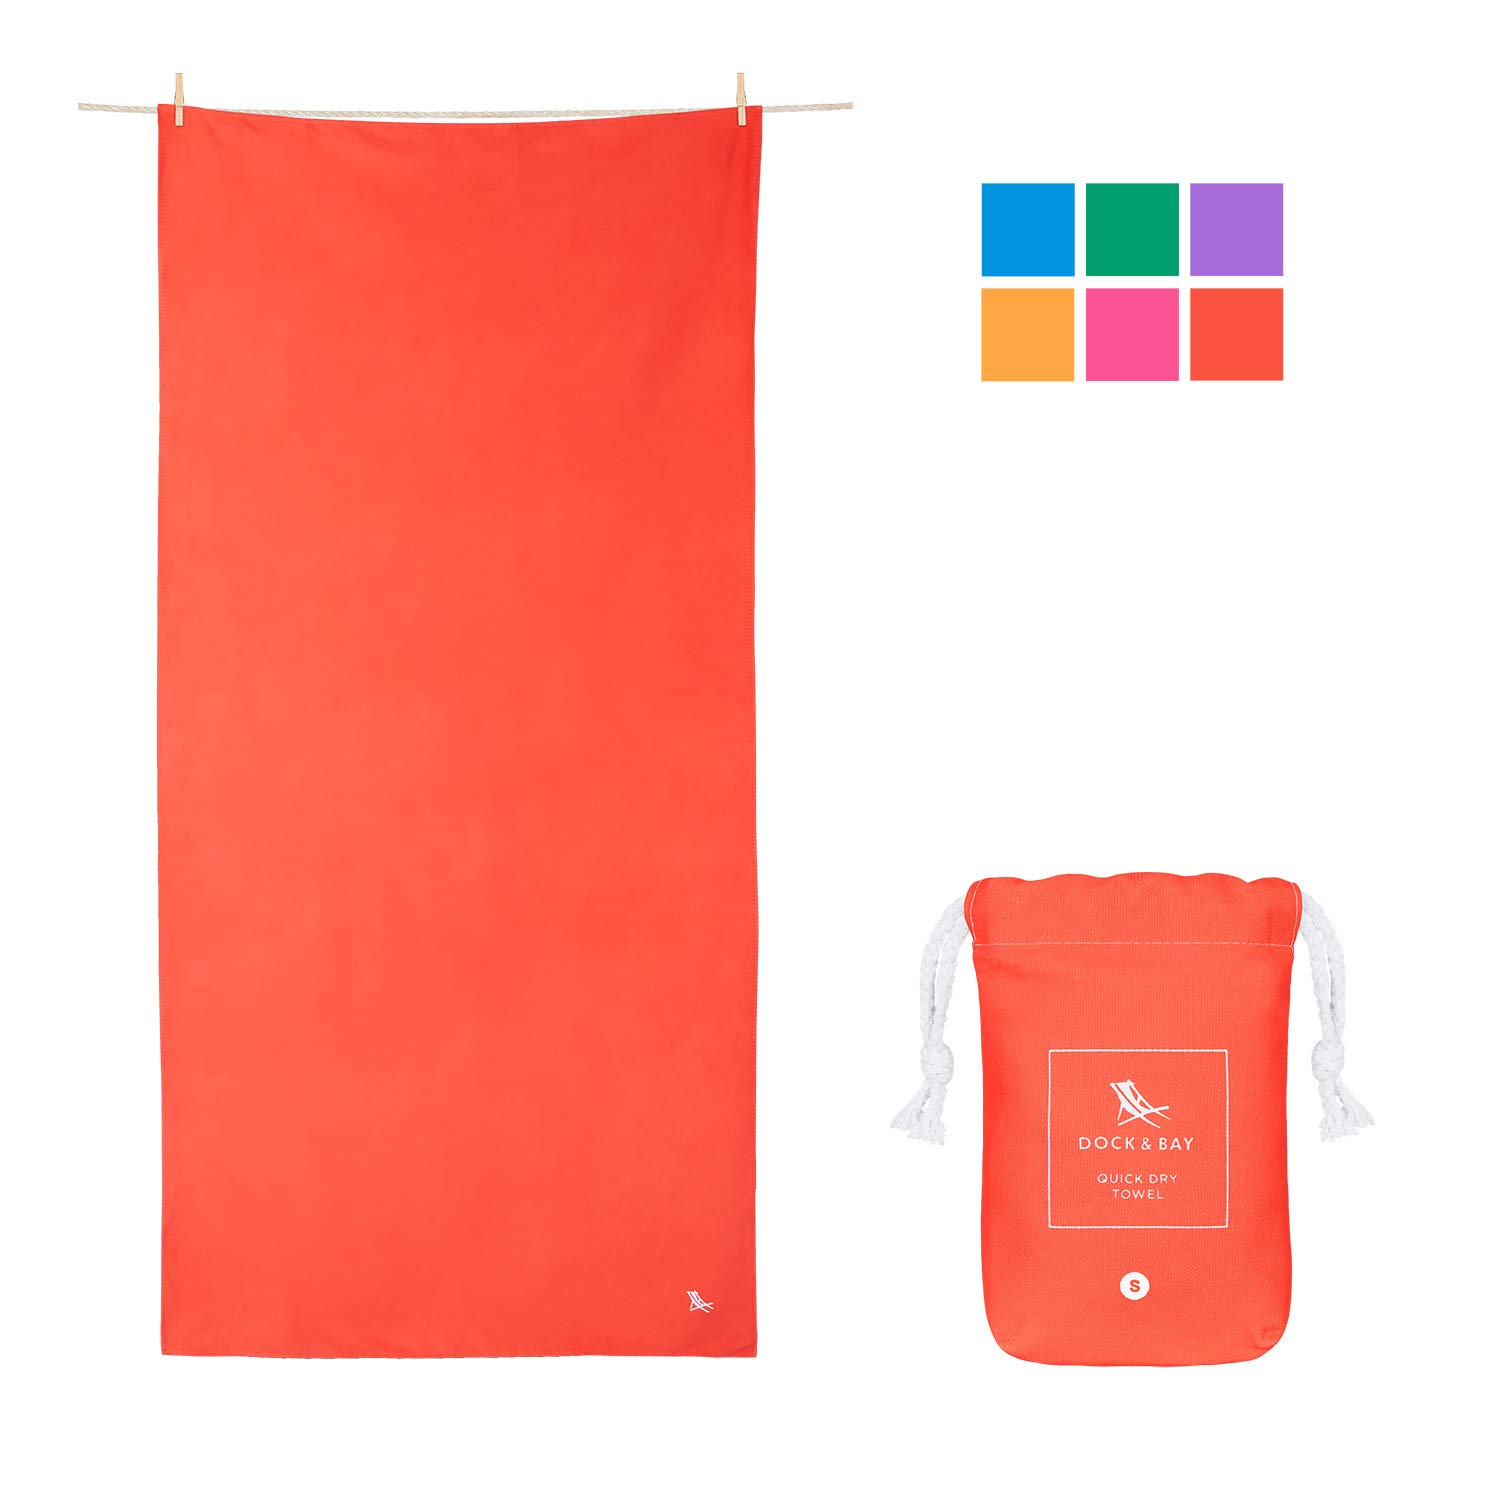 Gym Towel /& Workout Towel sports gym Extra Large XL 78x35, Large 63x31, Small 40x20 camping pool for travel Quick Drying Towel Backpacking Gear beach. swim swim yoga